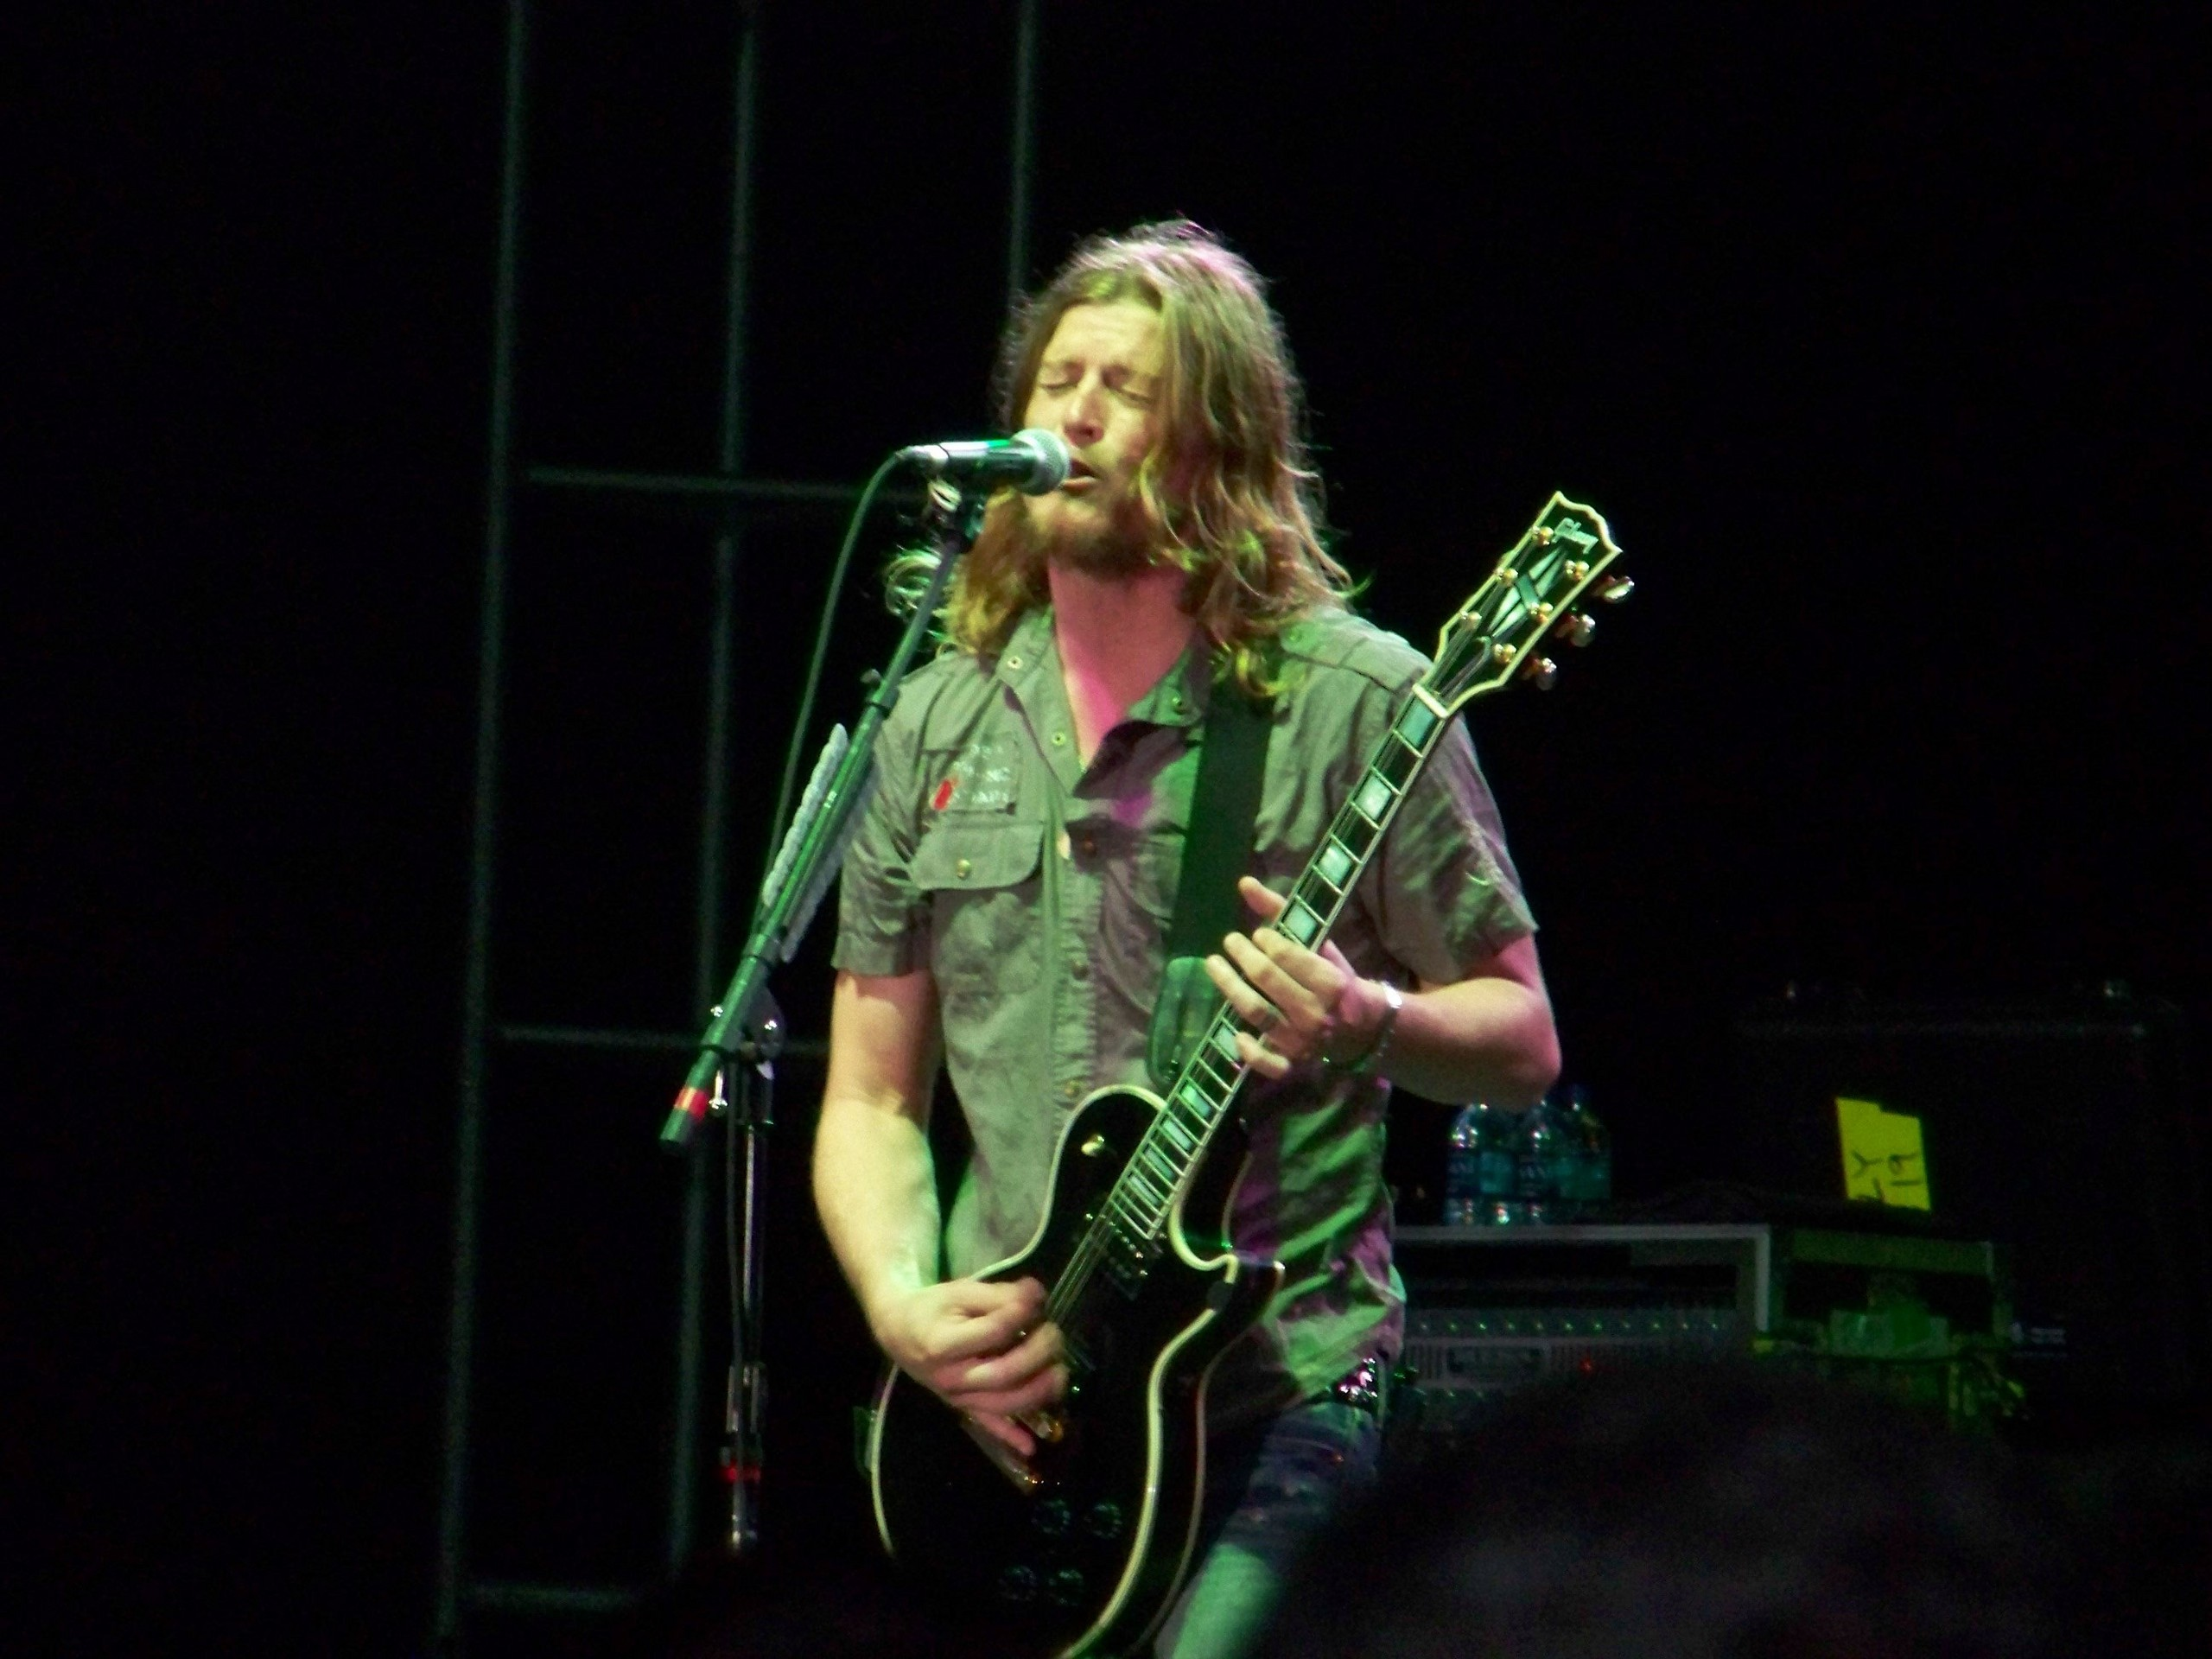 Puddle Of Mudd Images Puddle Of Mudd HD Wallpaper And